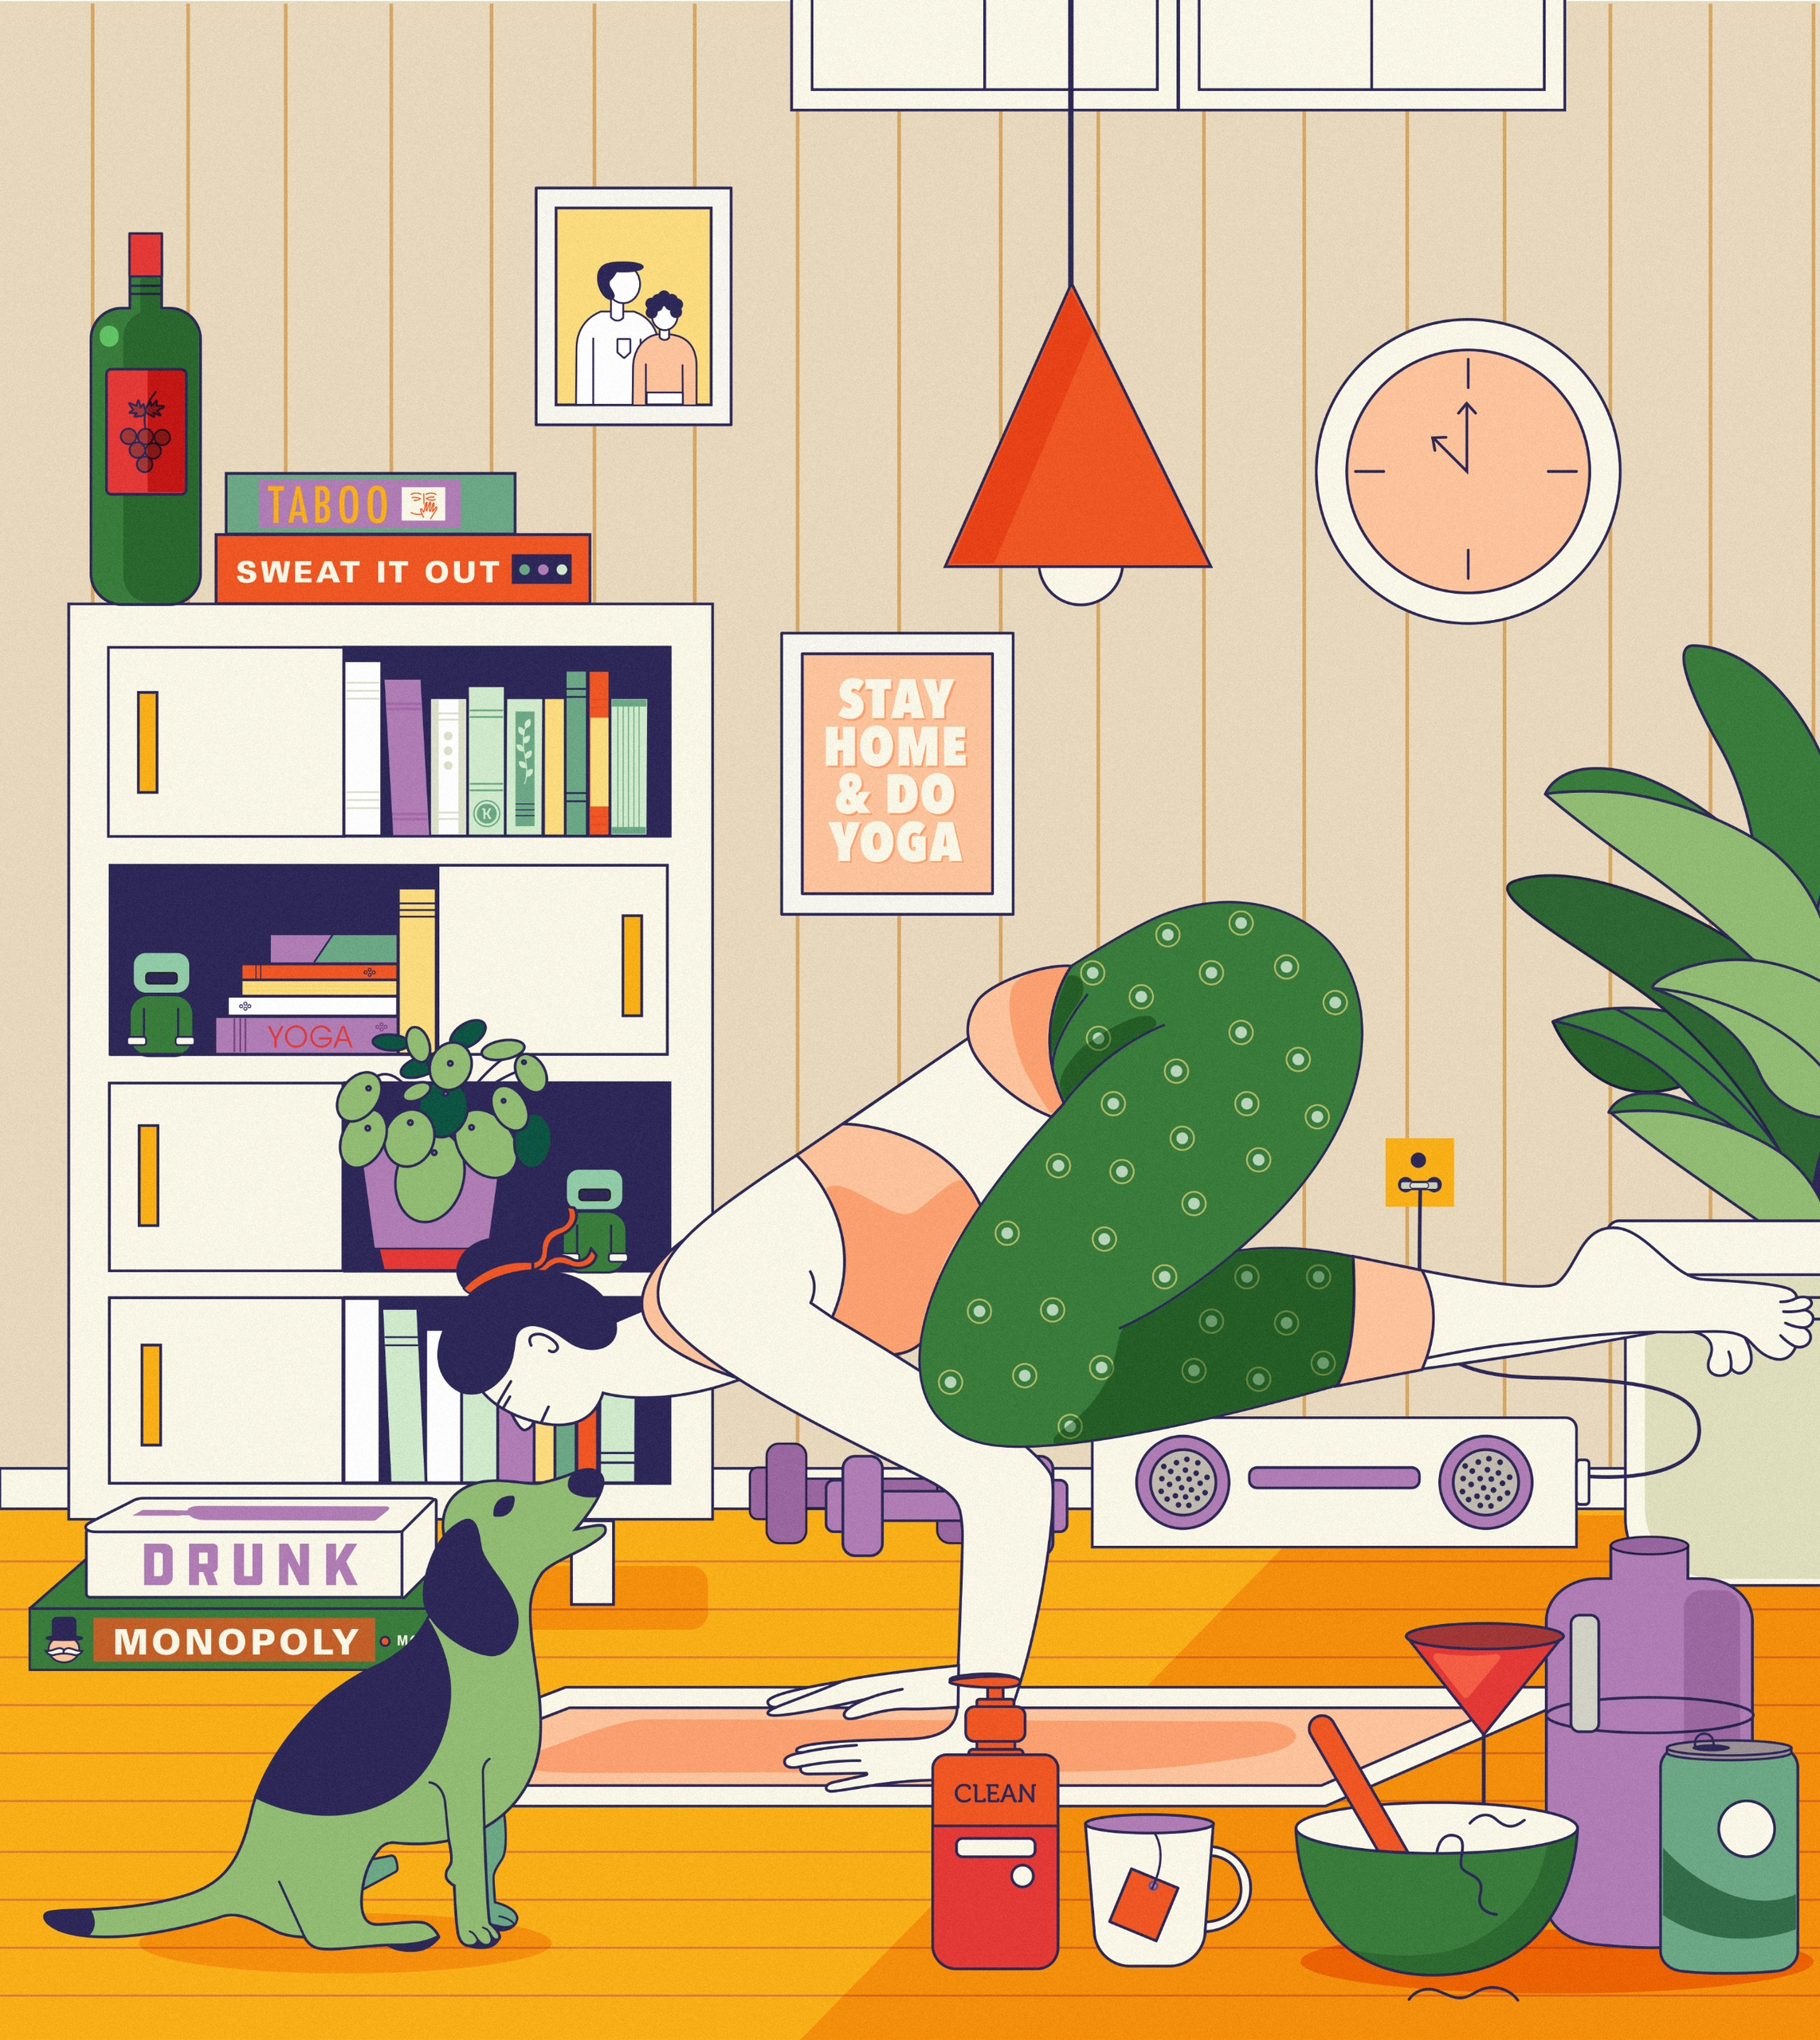 STAY HOME! Stay home cook, slee - miscellany-kanika | ello